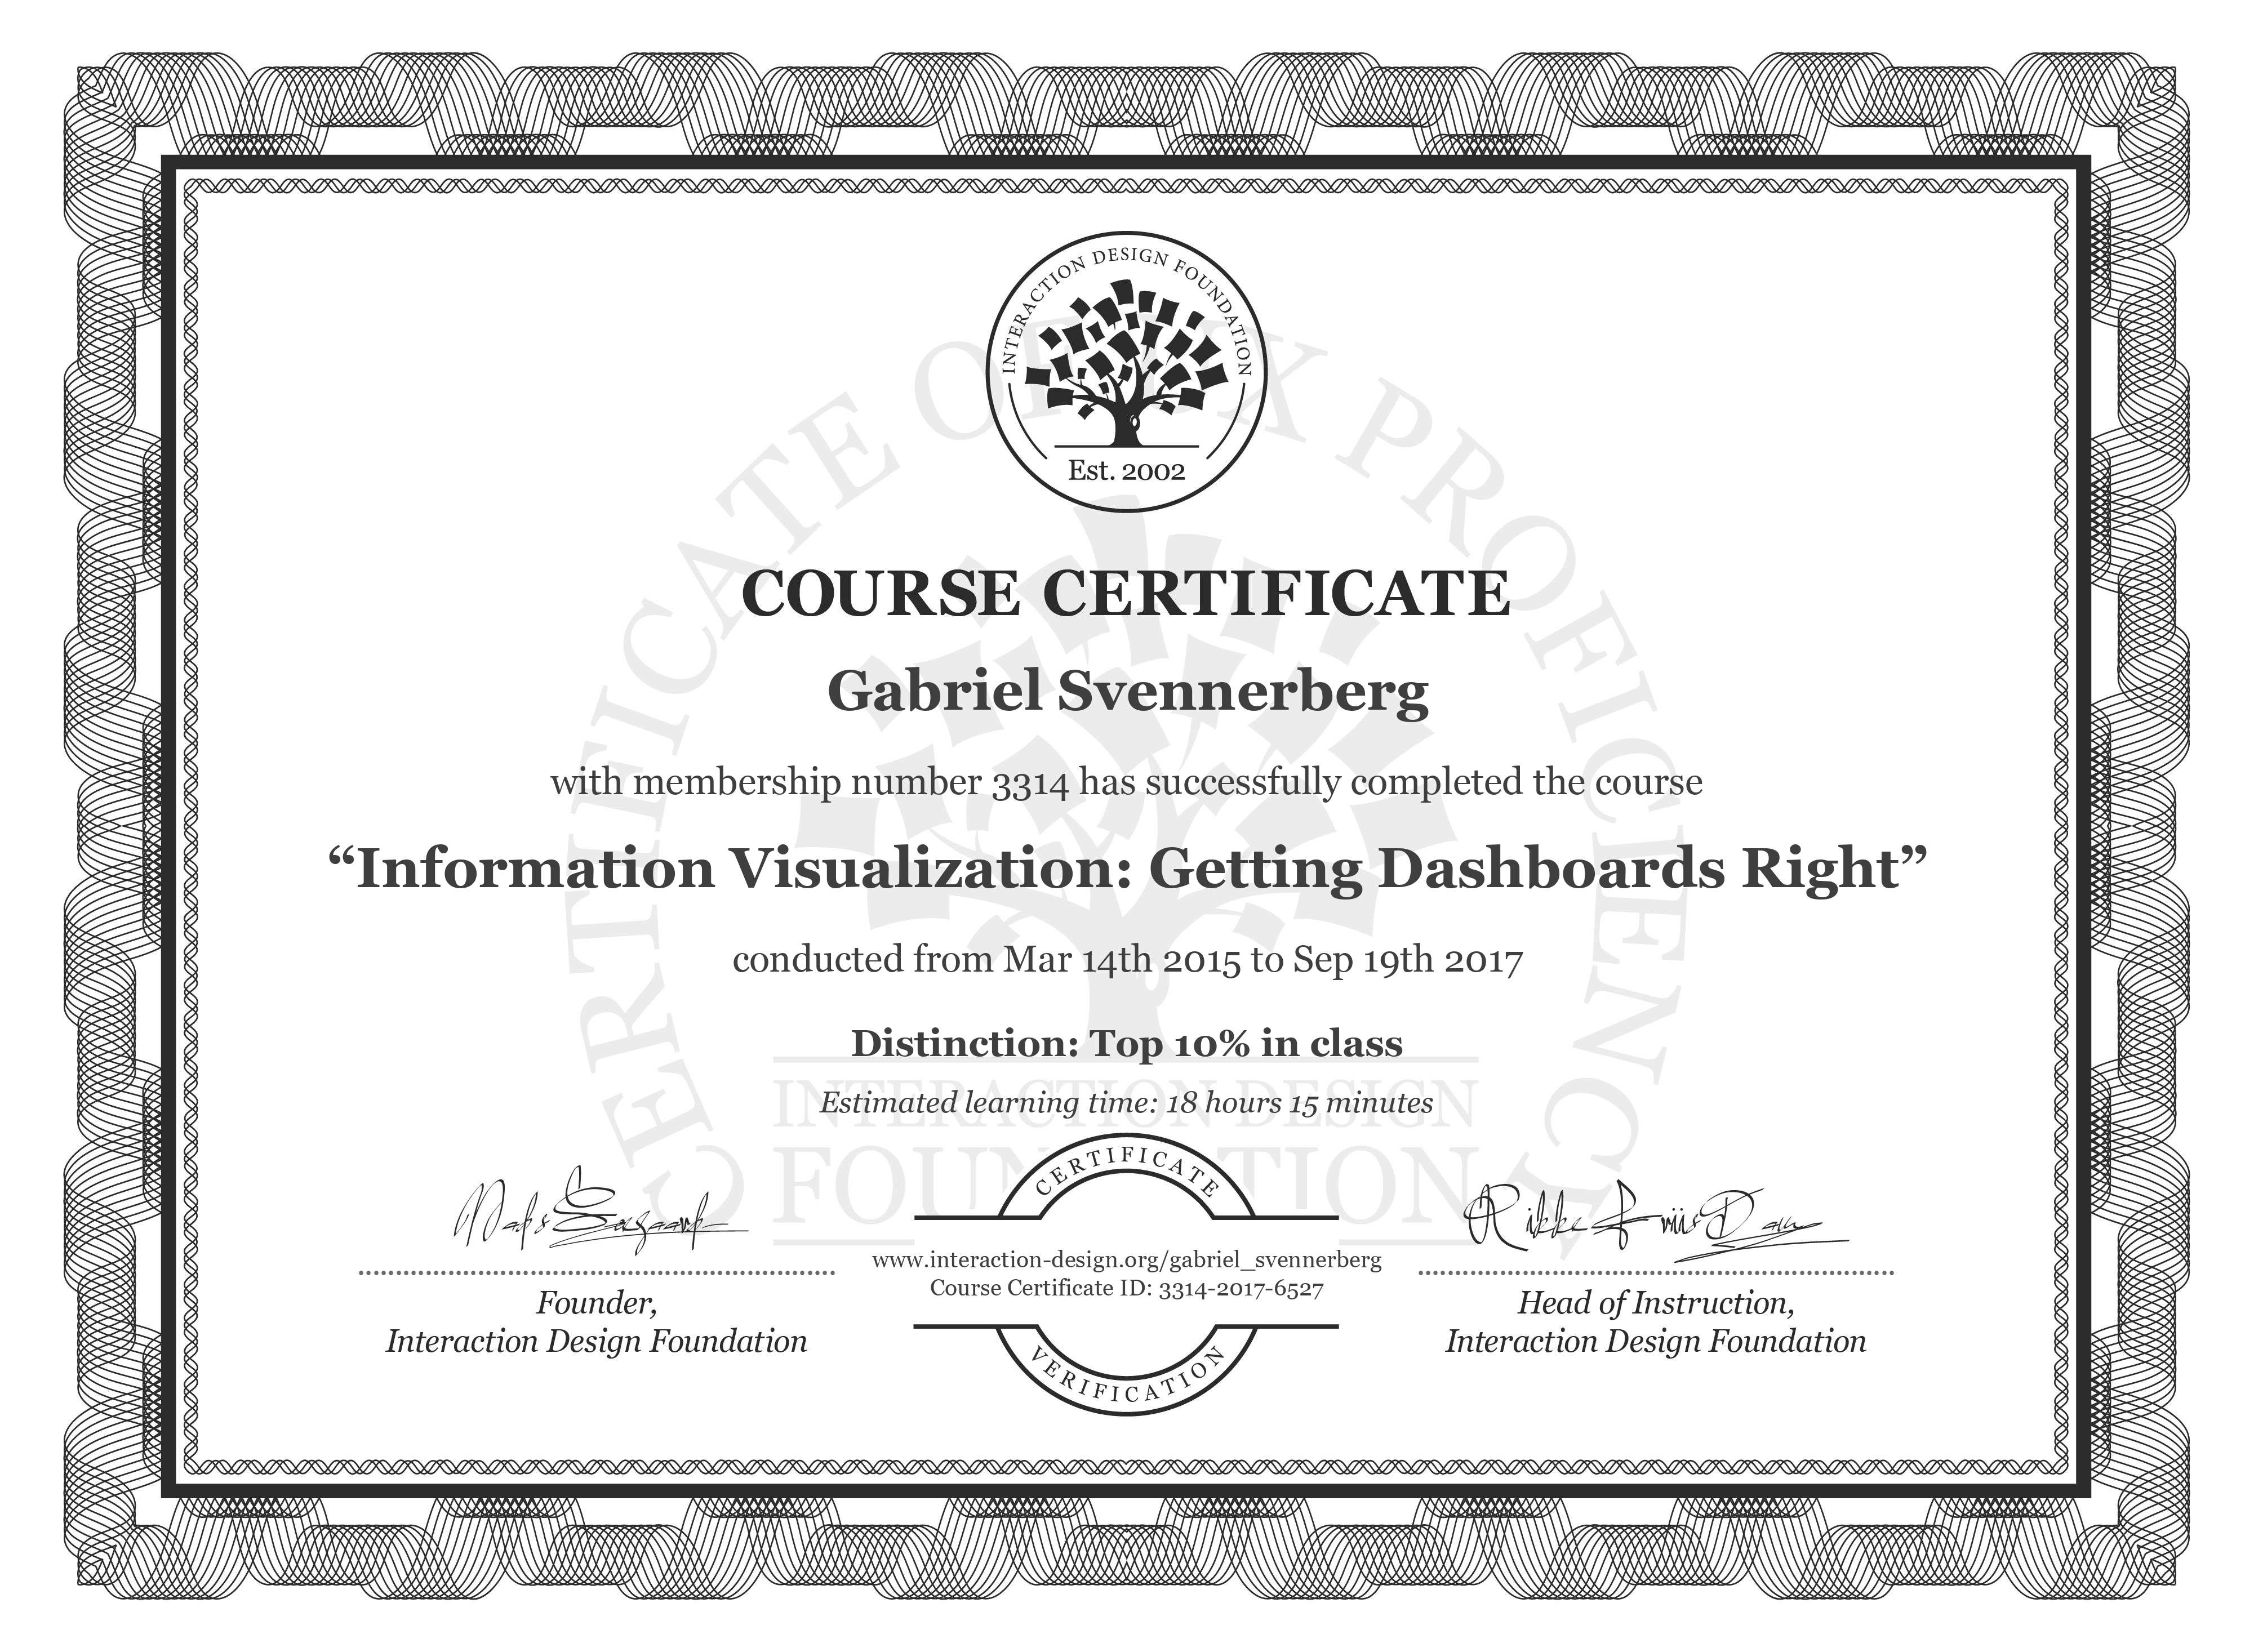 Gabriel Svennerberg: Course Certificate - Information Visualization: Getting Dashboards Right